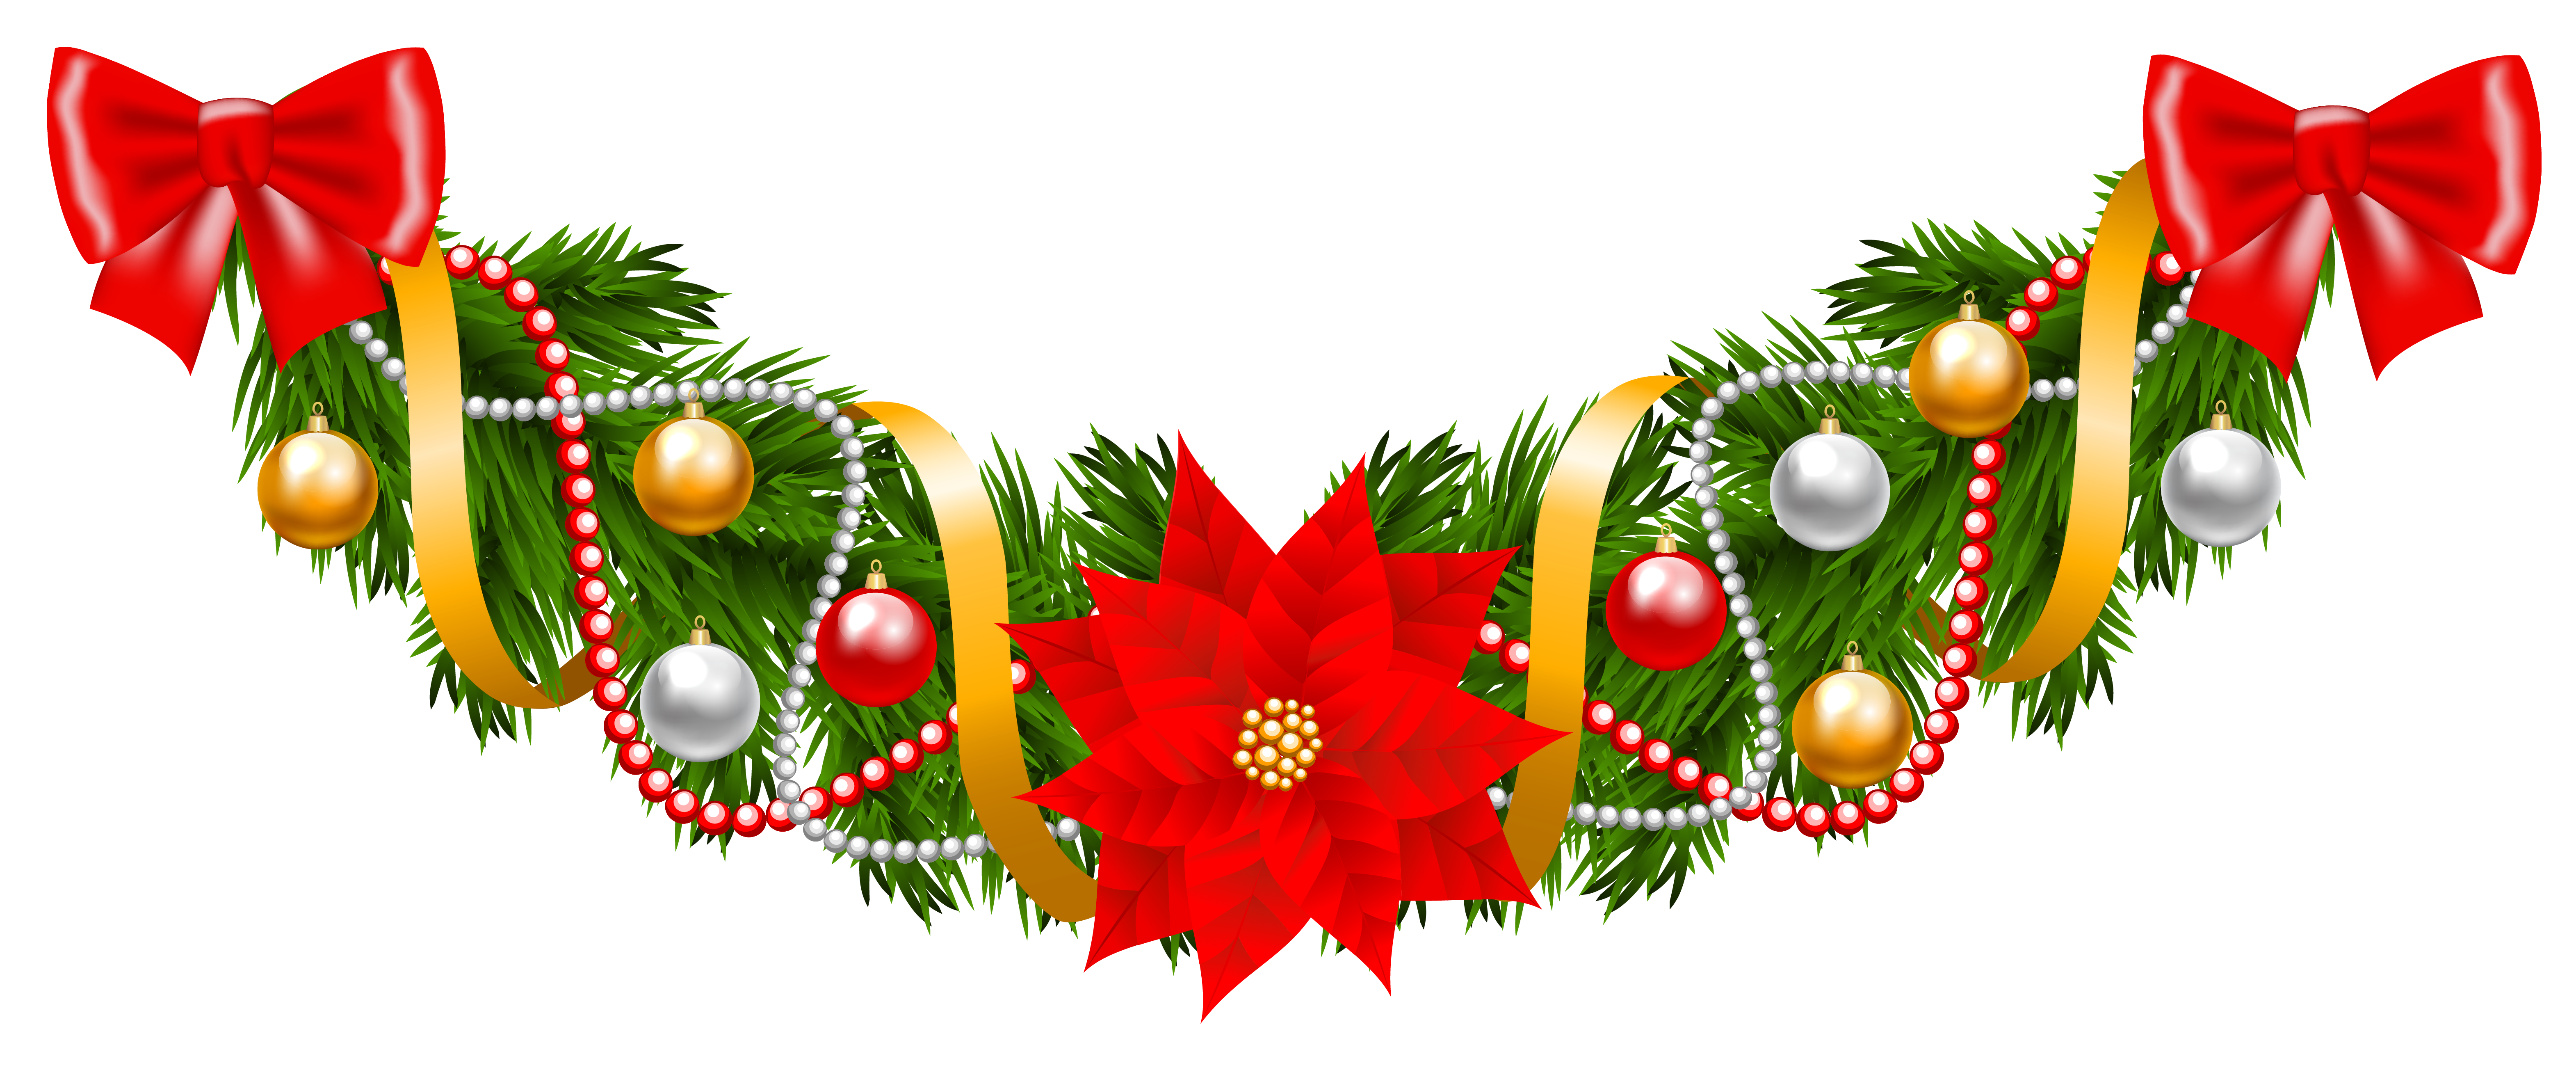 Poinsettia clipart holiday garland With Garland Deco Poinsettia size